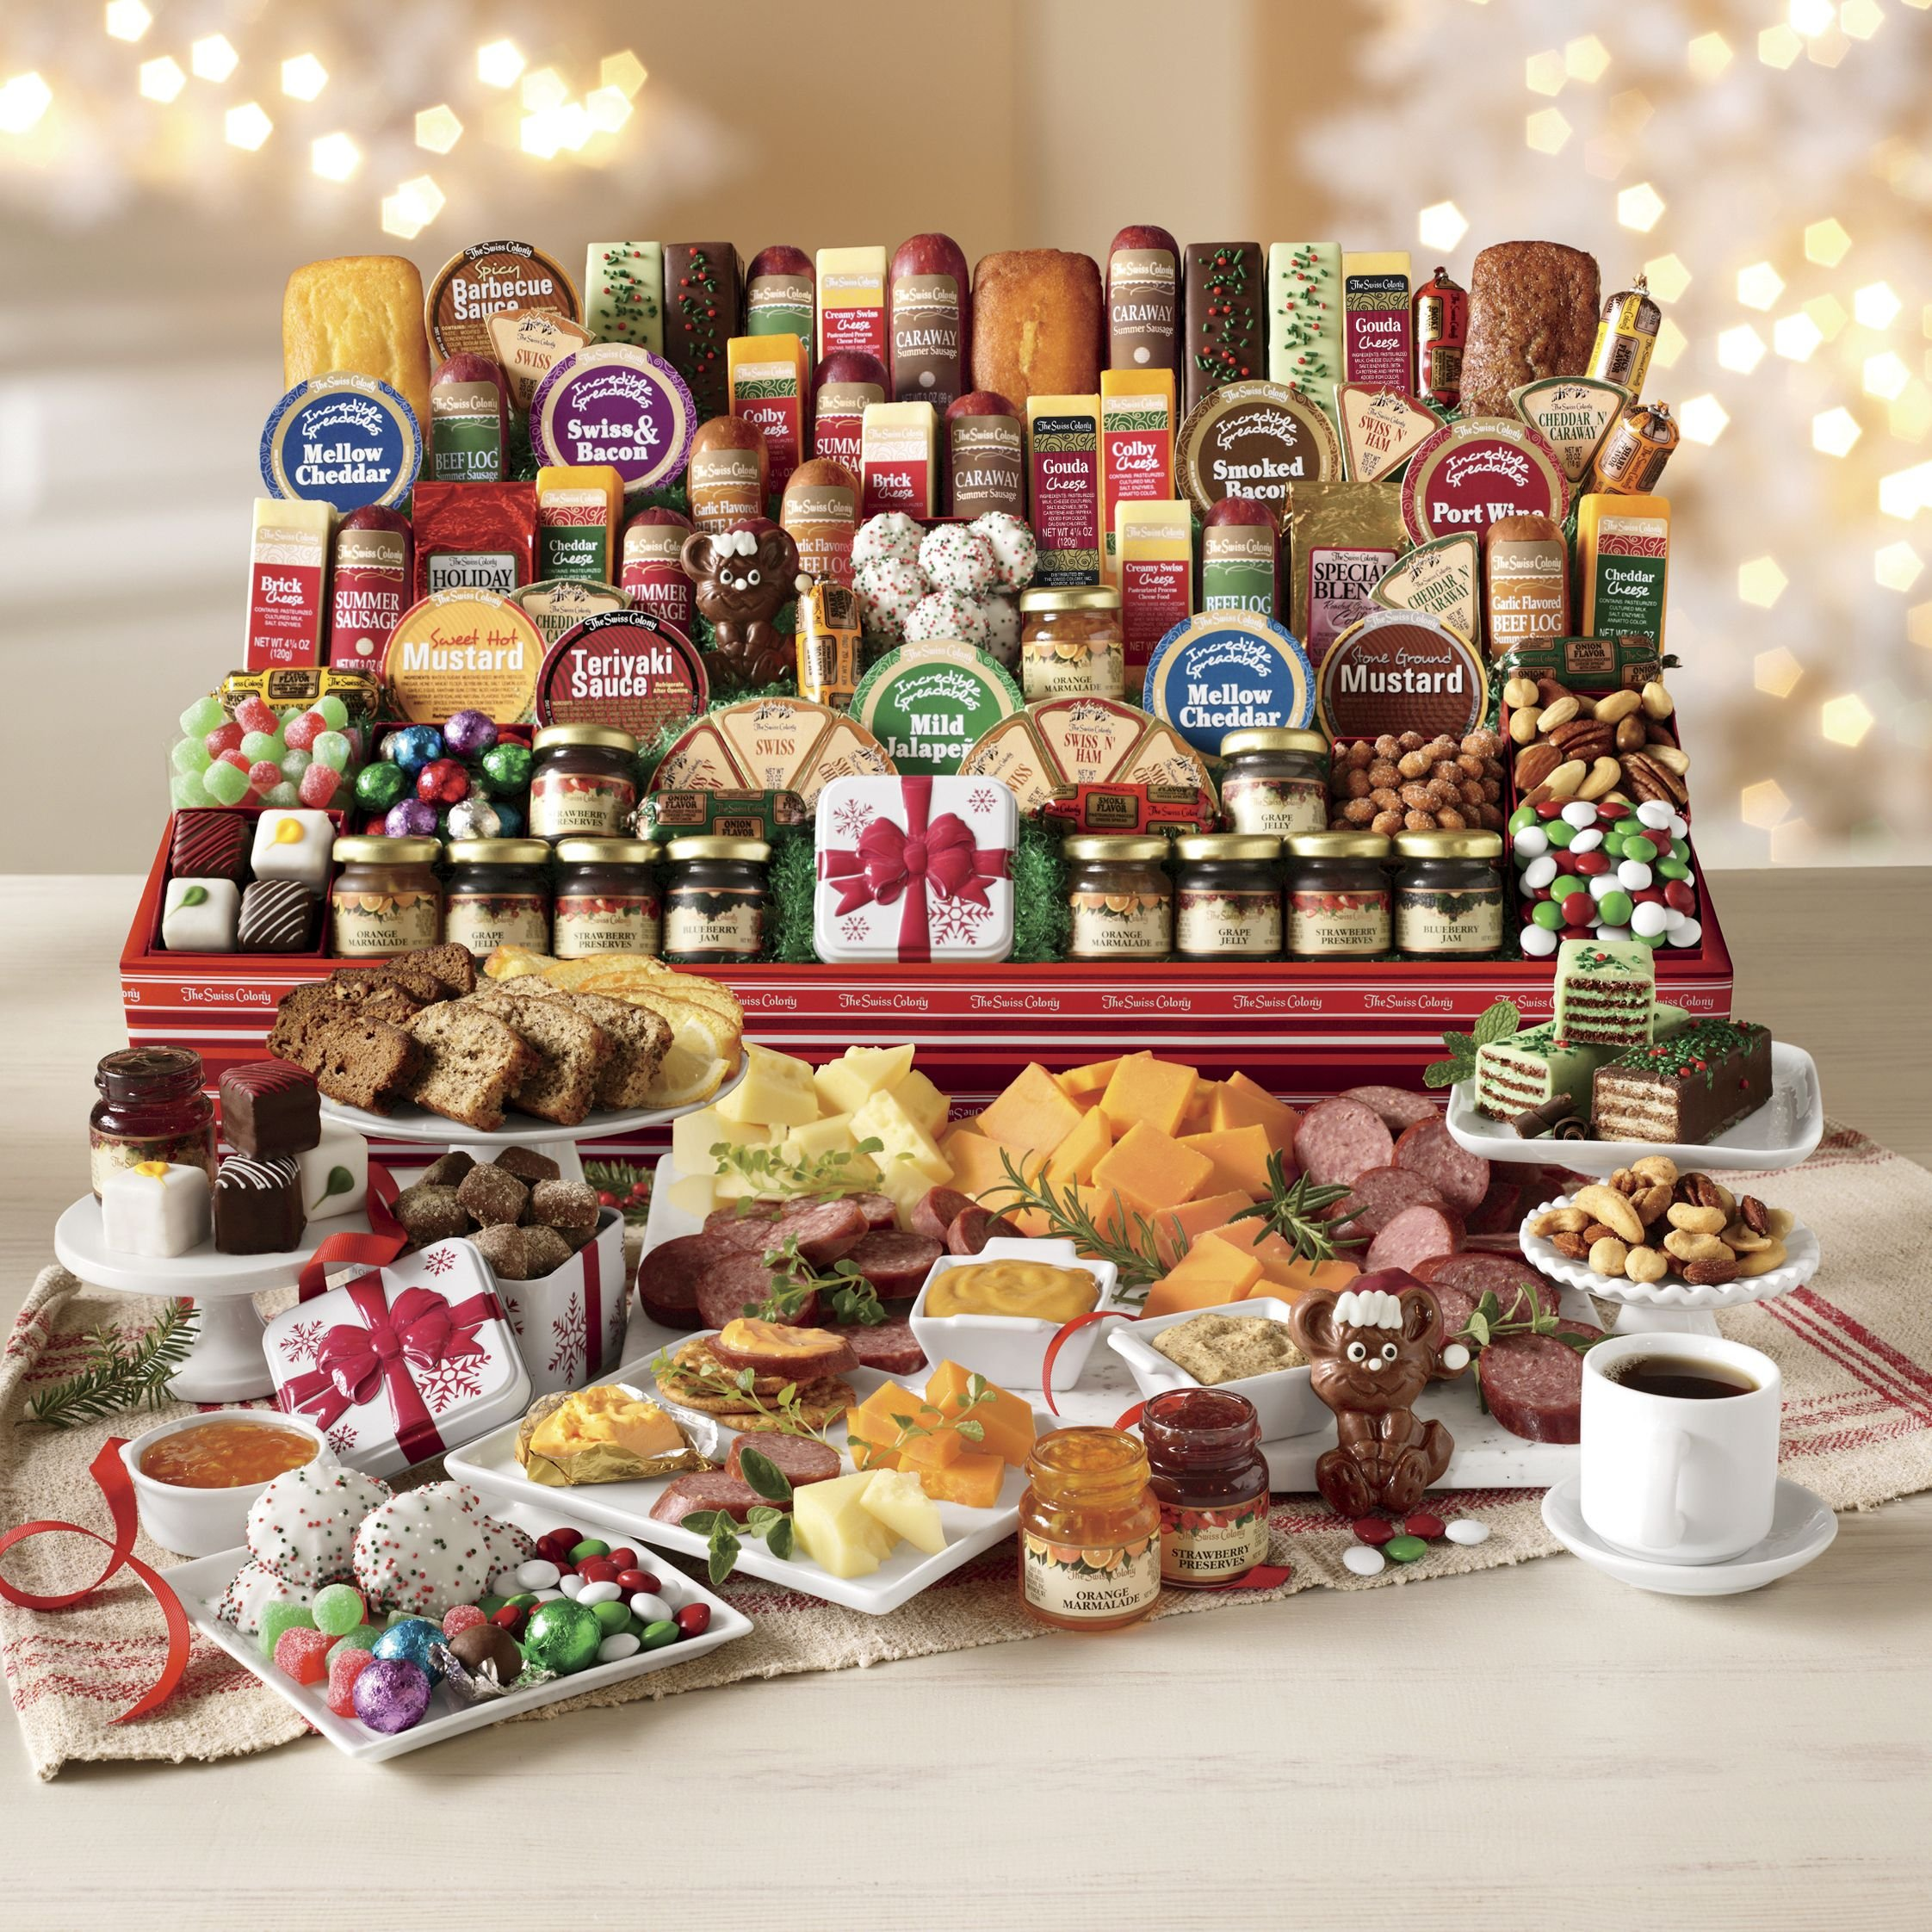 81 All-Time Favorites Food Gift from The Swiss Colony by The Swiss Colony